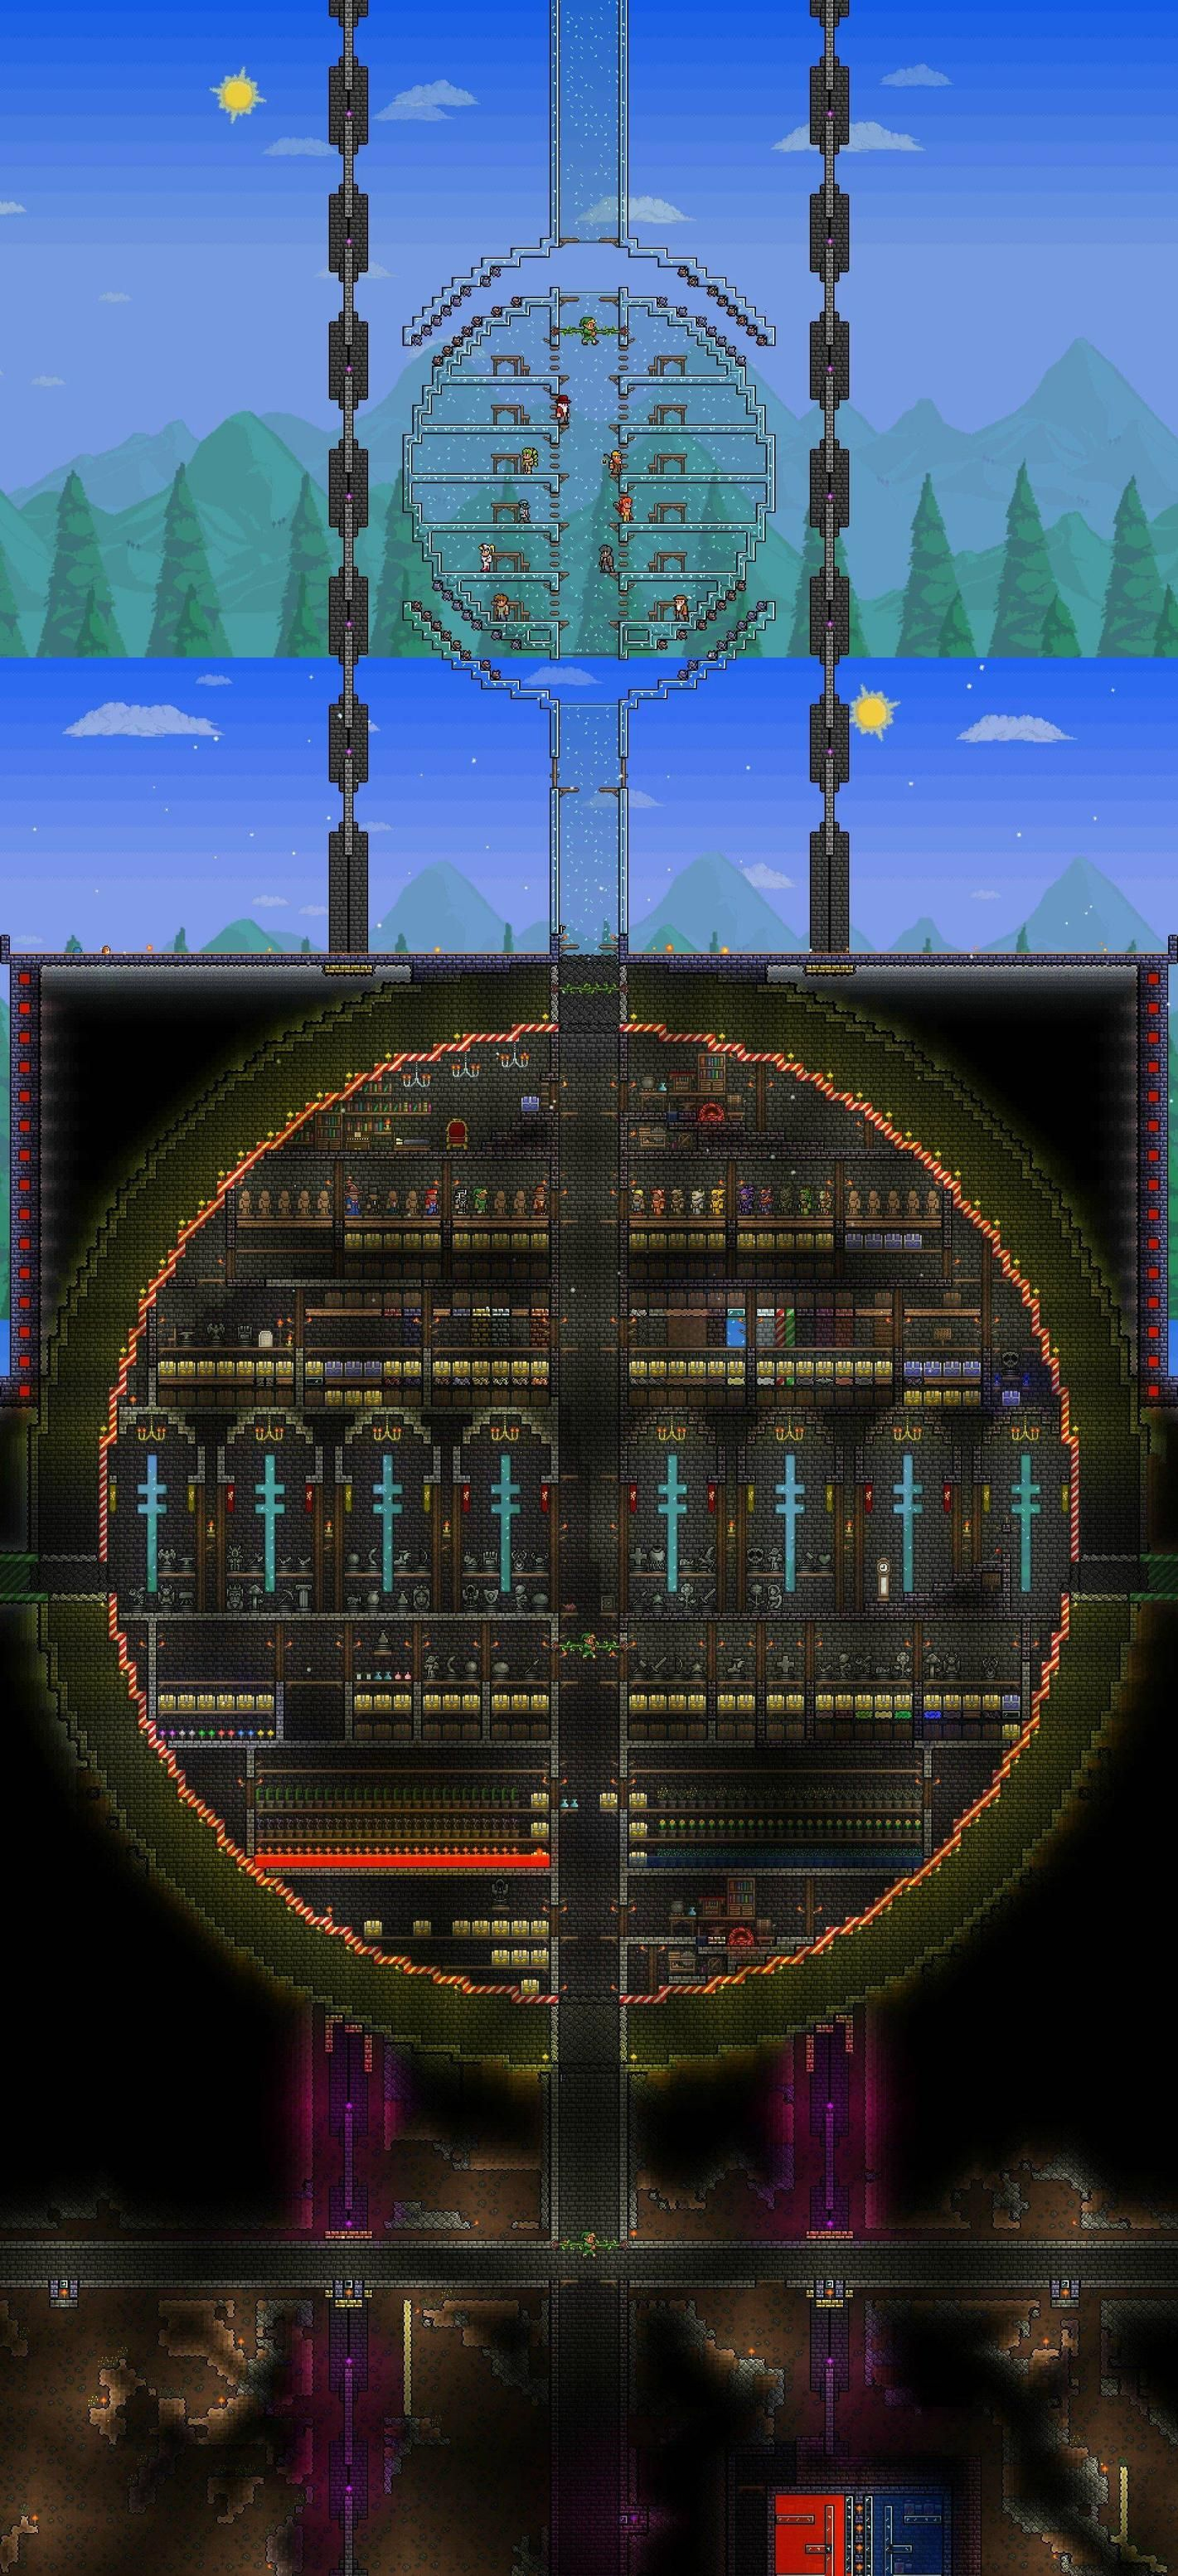 terraria how to build a bed